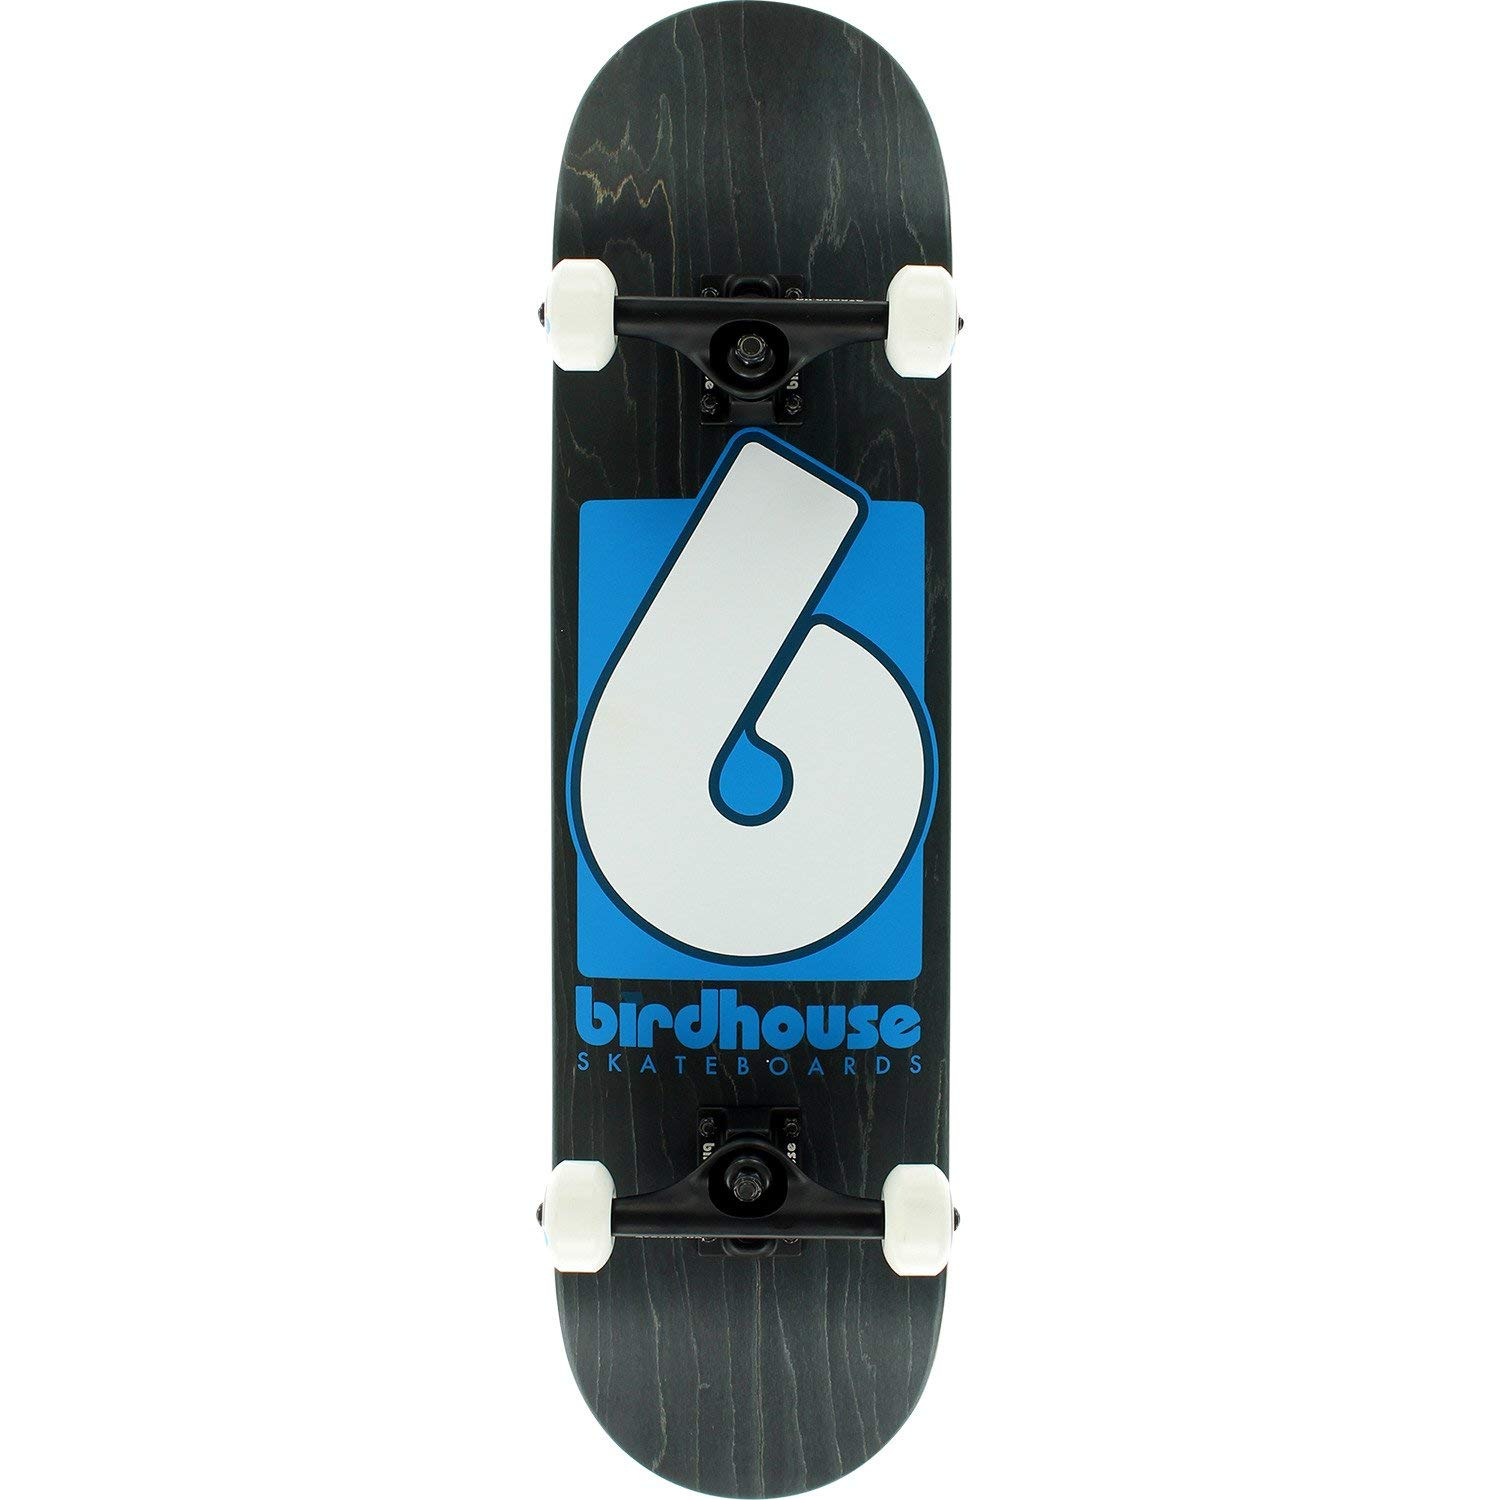 294b093f Buy CCS Logo Skateboard Complete - Blue in Cheap Price on Alibaba.com